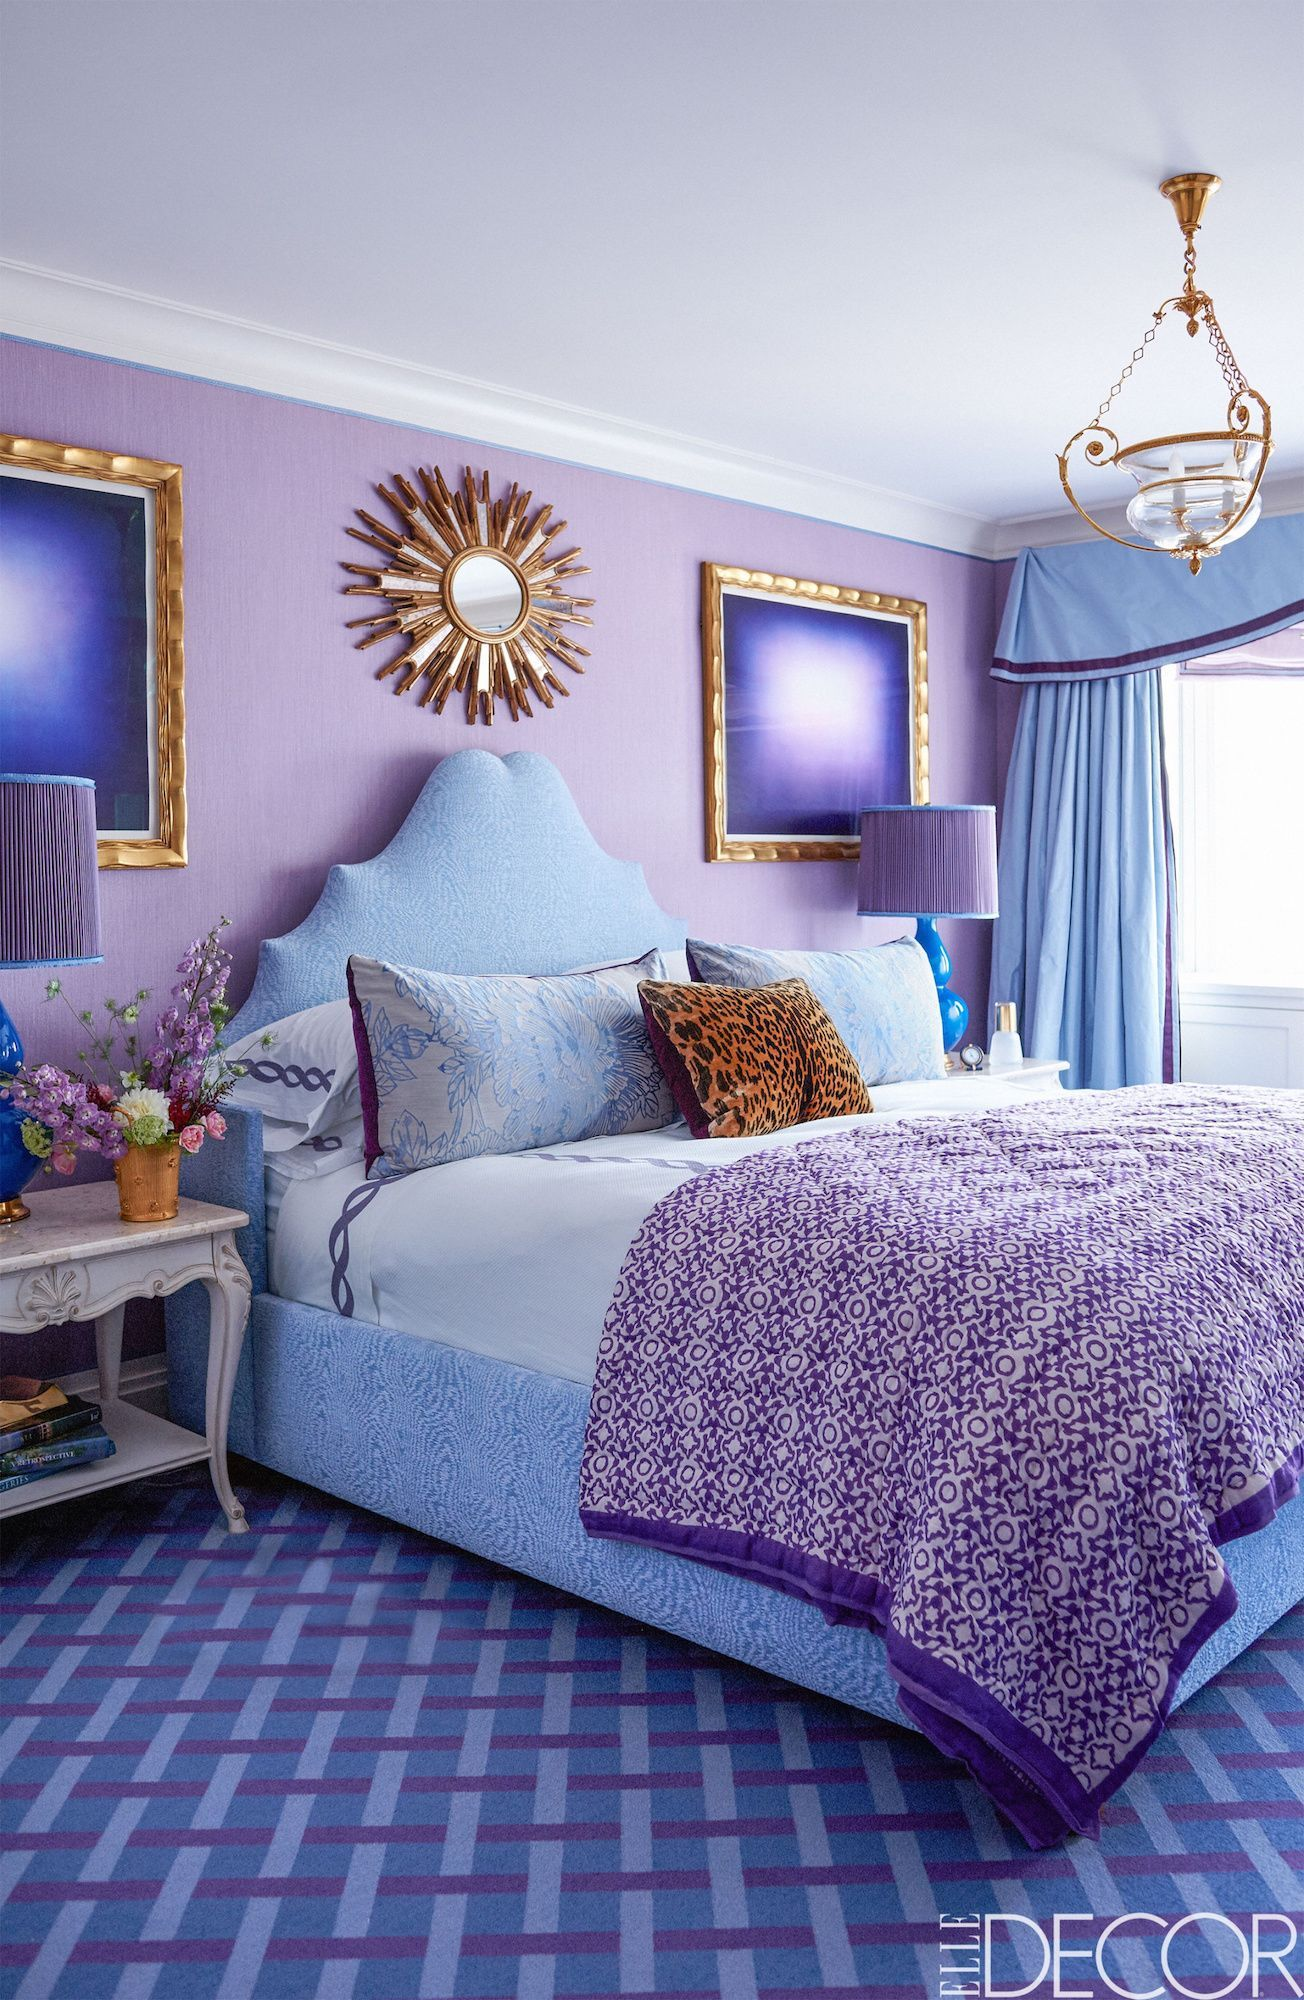 Paint Your Bedroom This Pretty Shade For A Tranquil Vibe